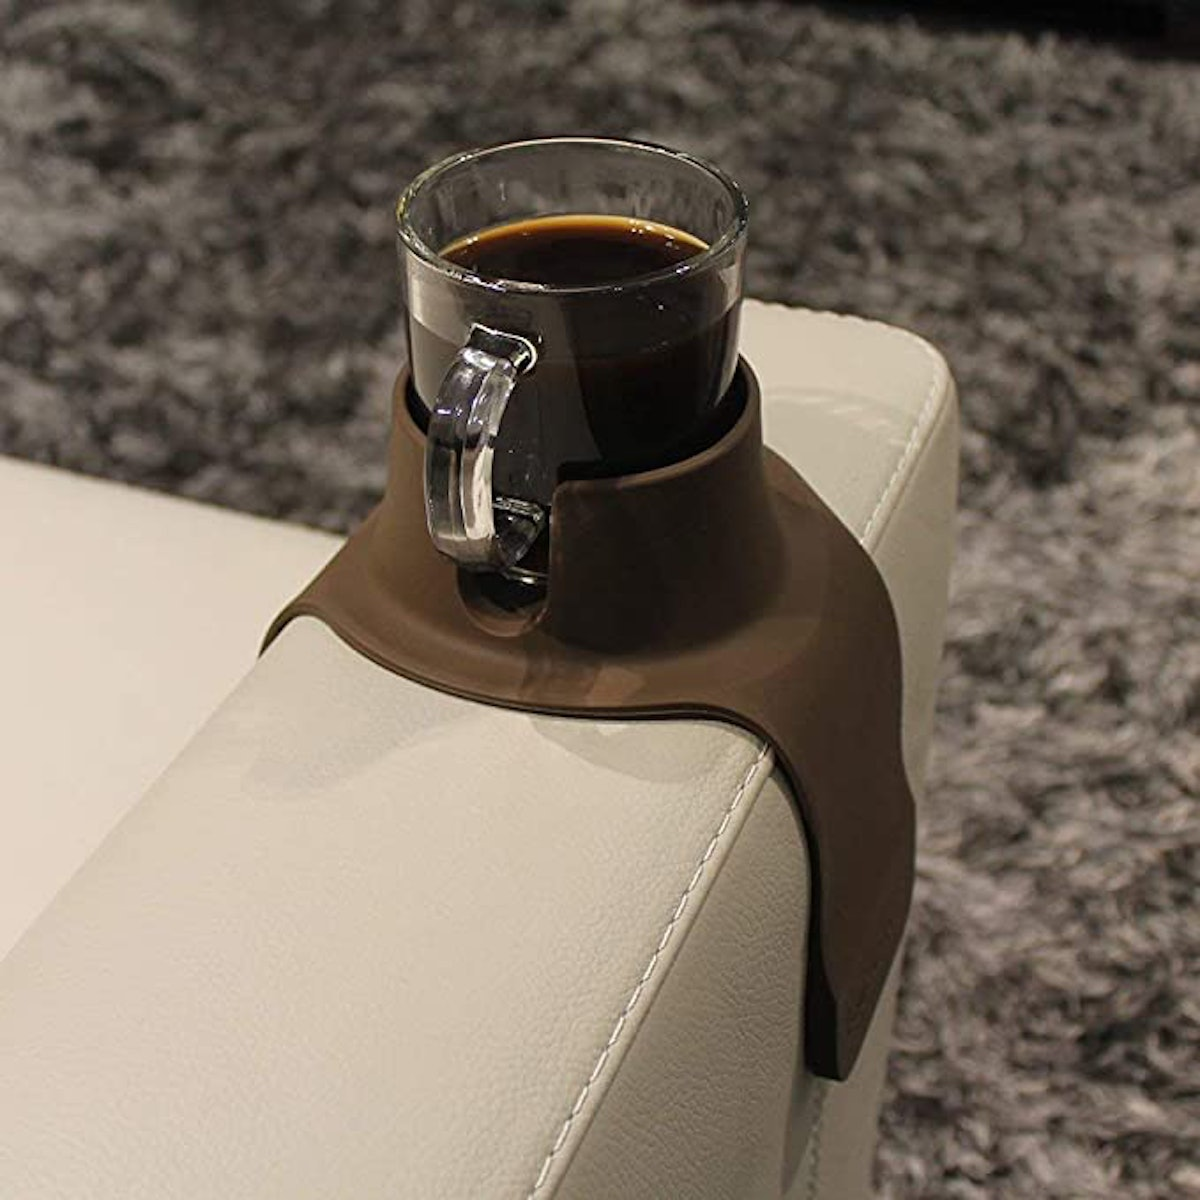 CouchCoaster Anti-Spill Cup Holder